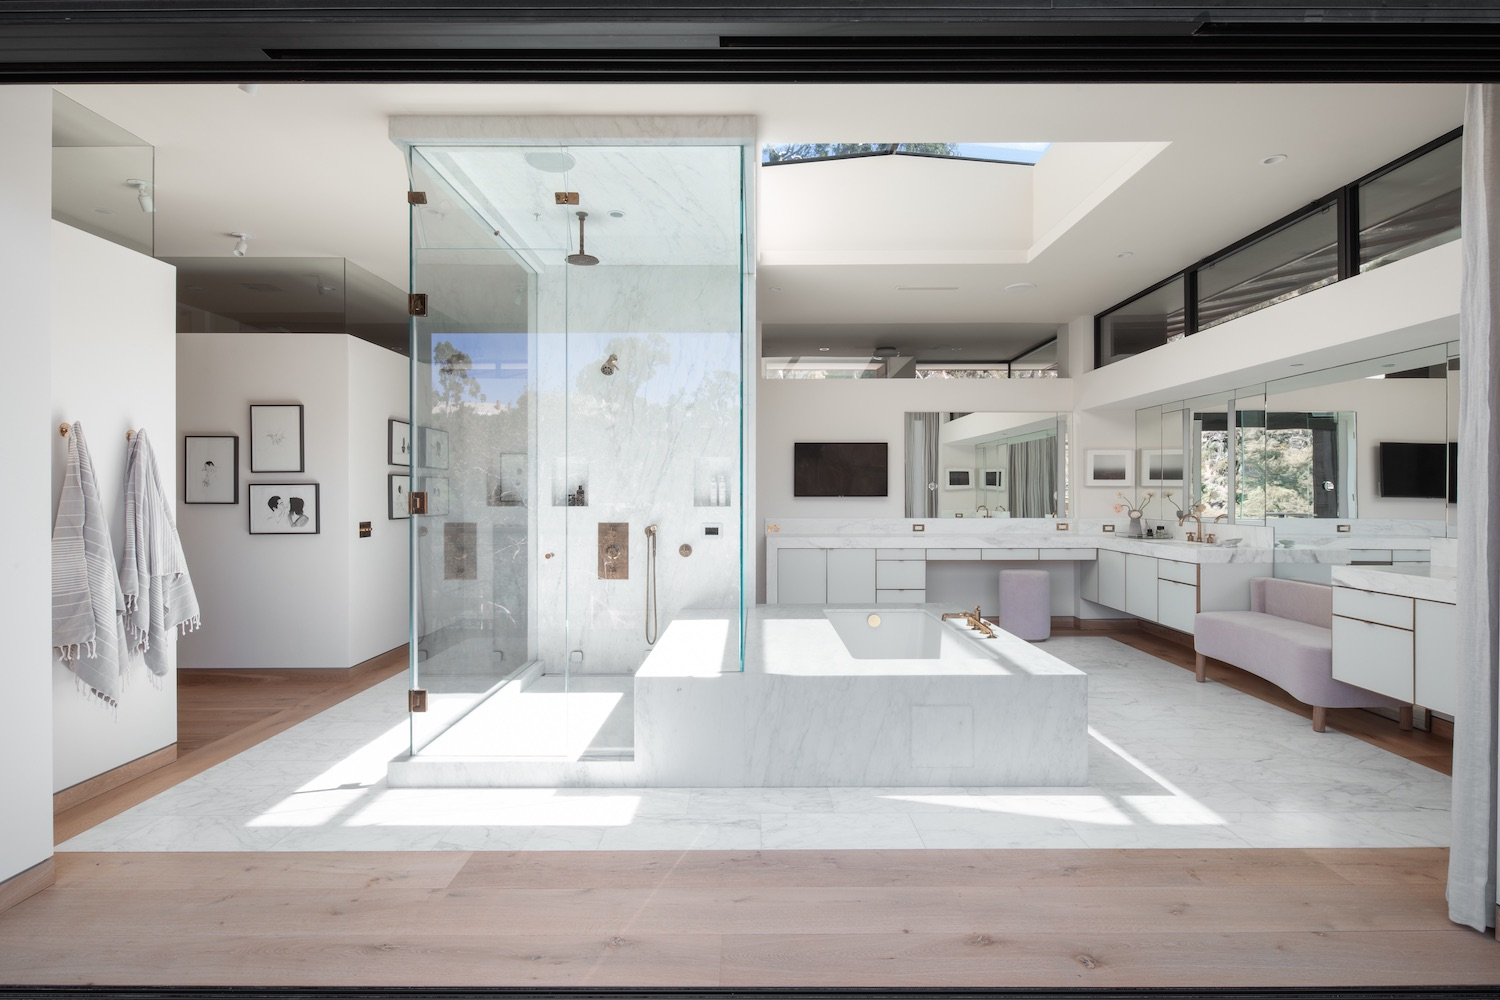 bathroom with skylight in the roof